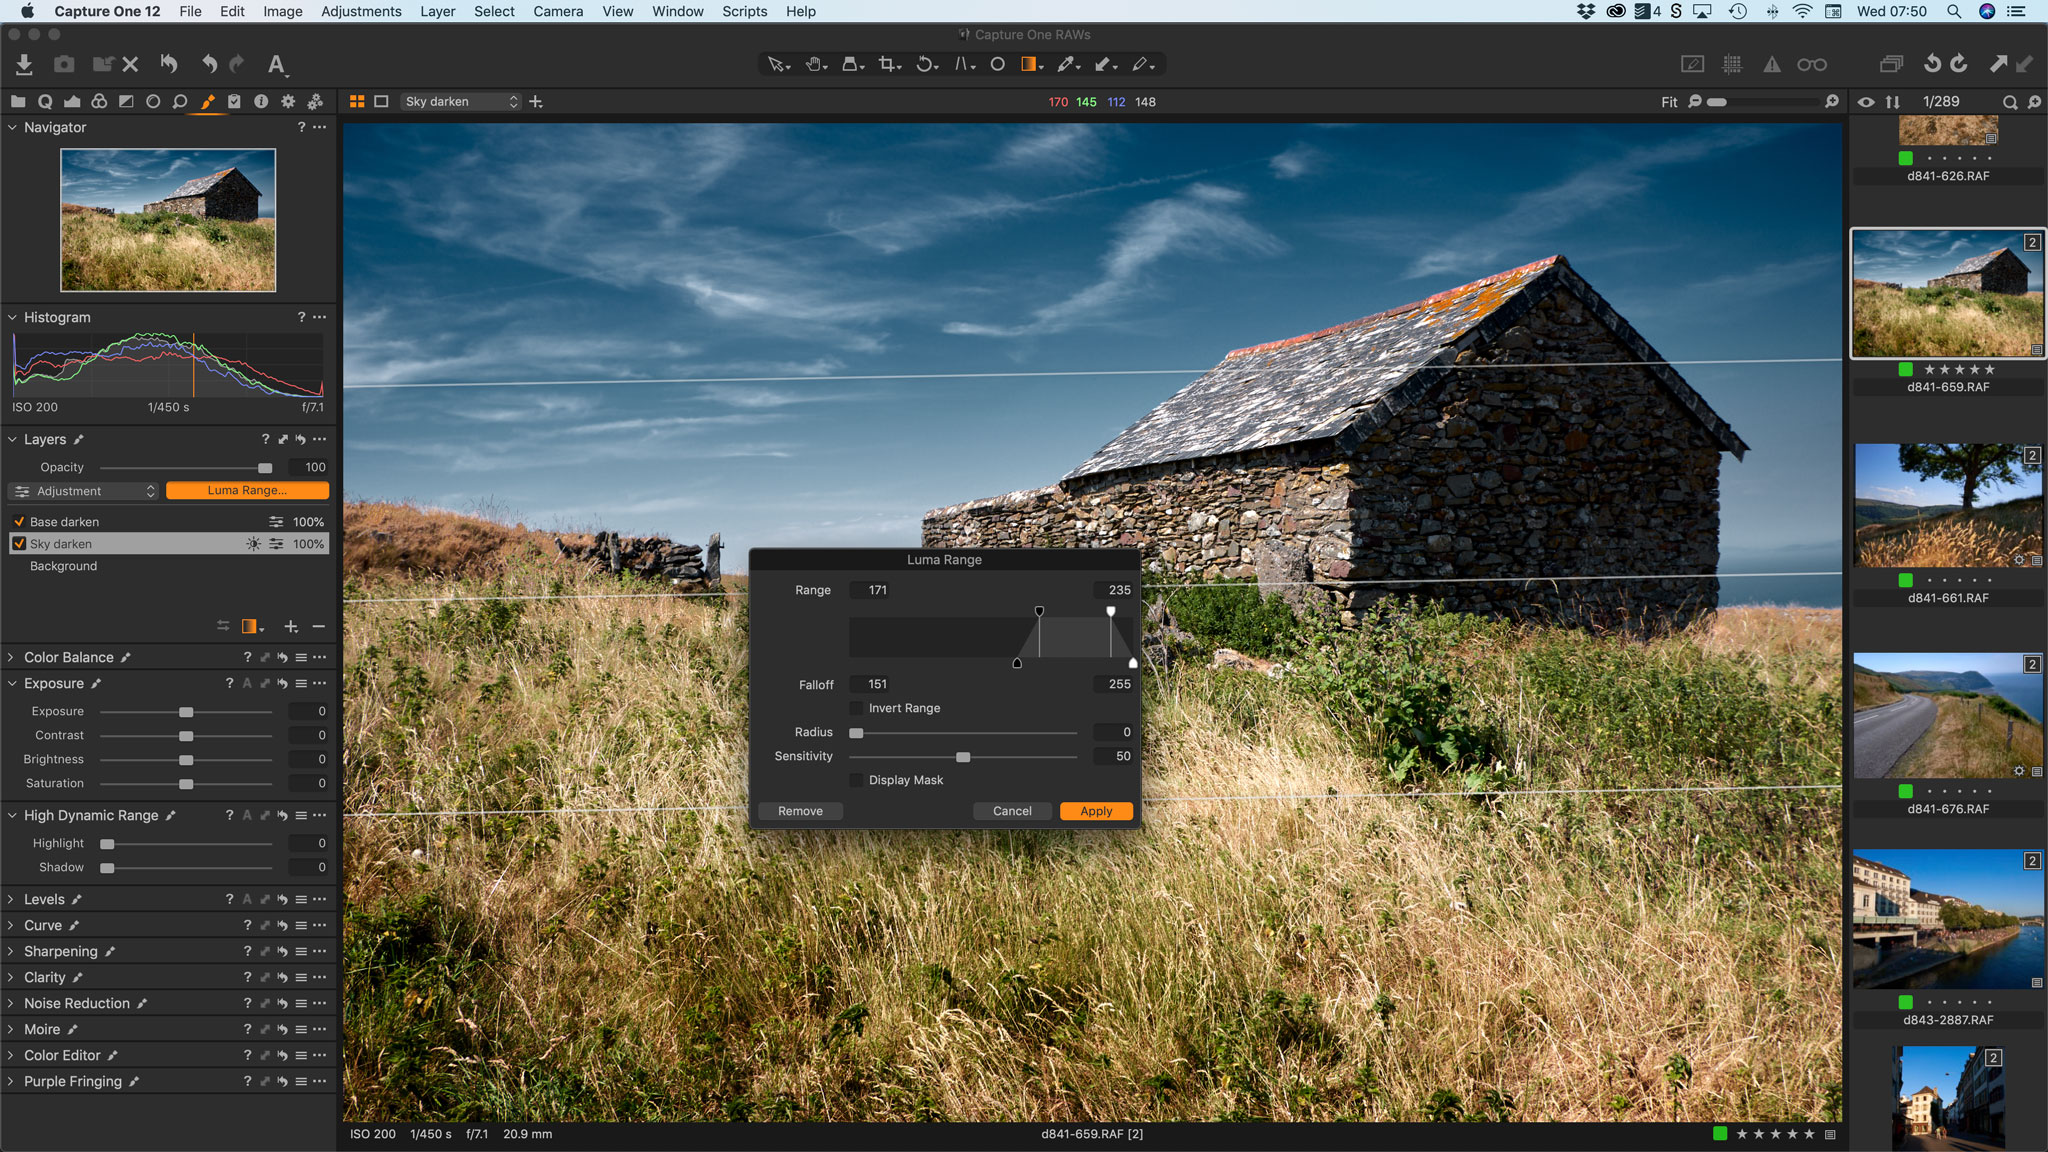 Restricciones carne de vaca Perseo  Capture One vs Lightroom: which is best? | Life after Photoshop